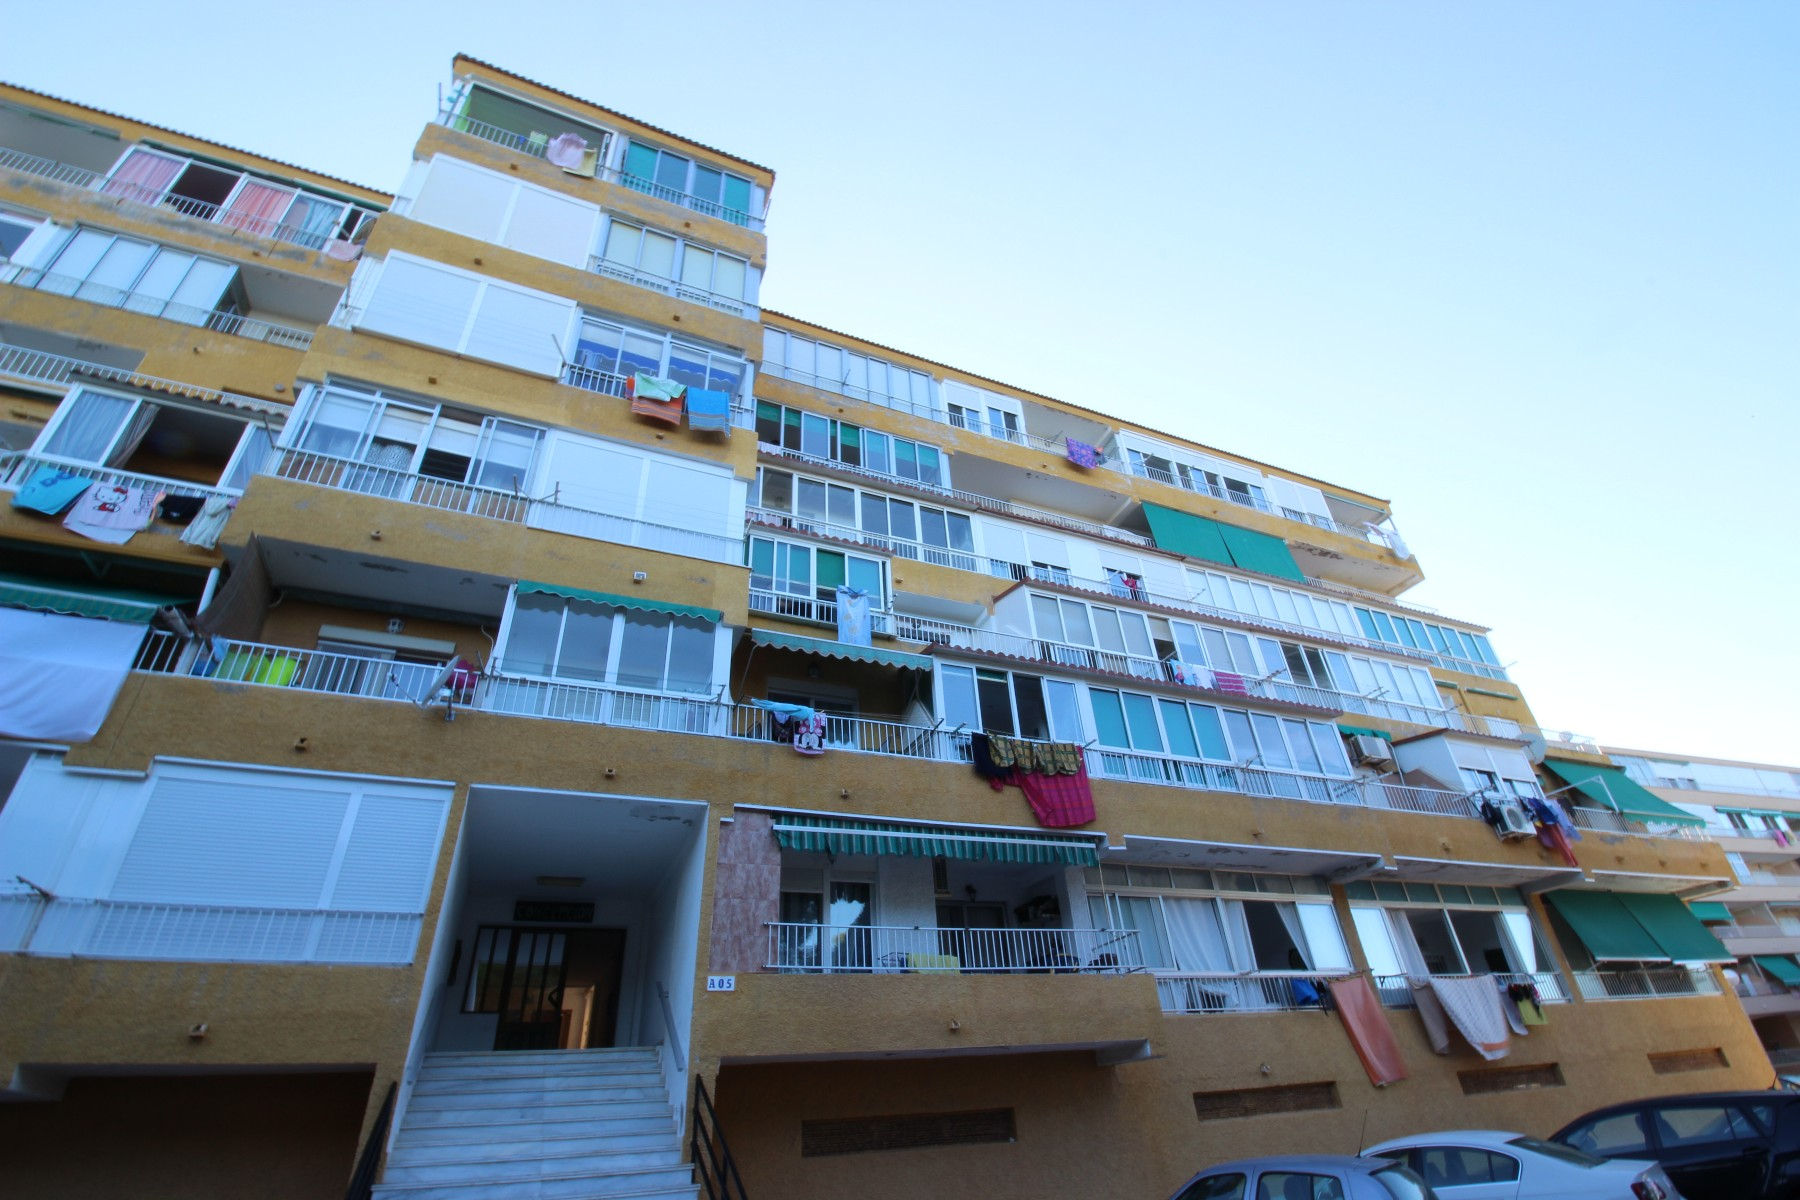 2 bedroom Apartament in Zona Sur in Nexus Grupo